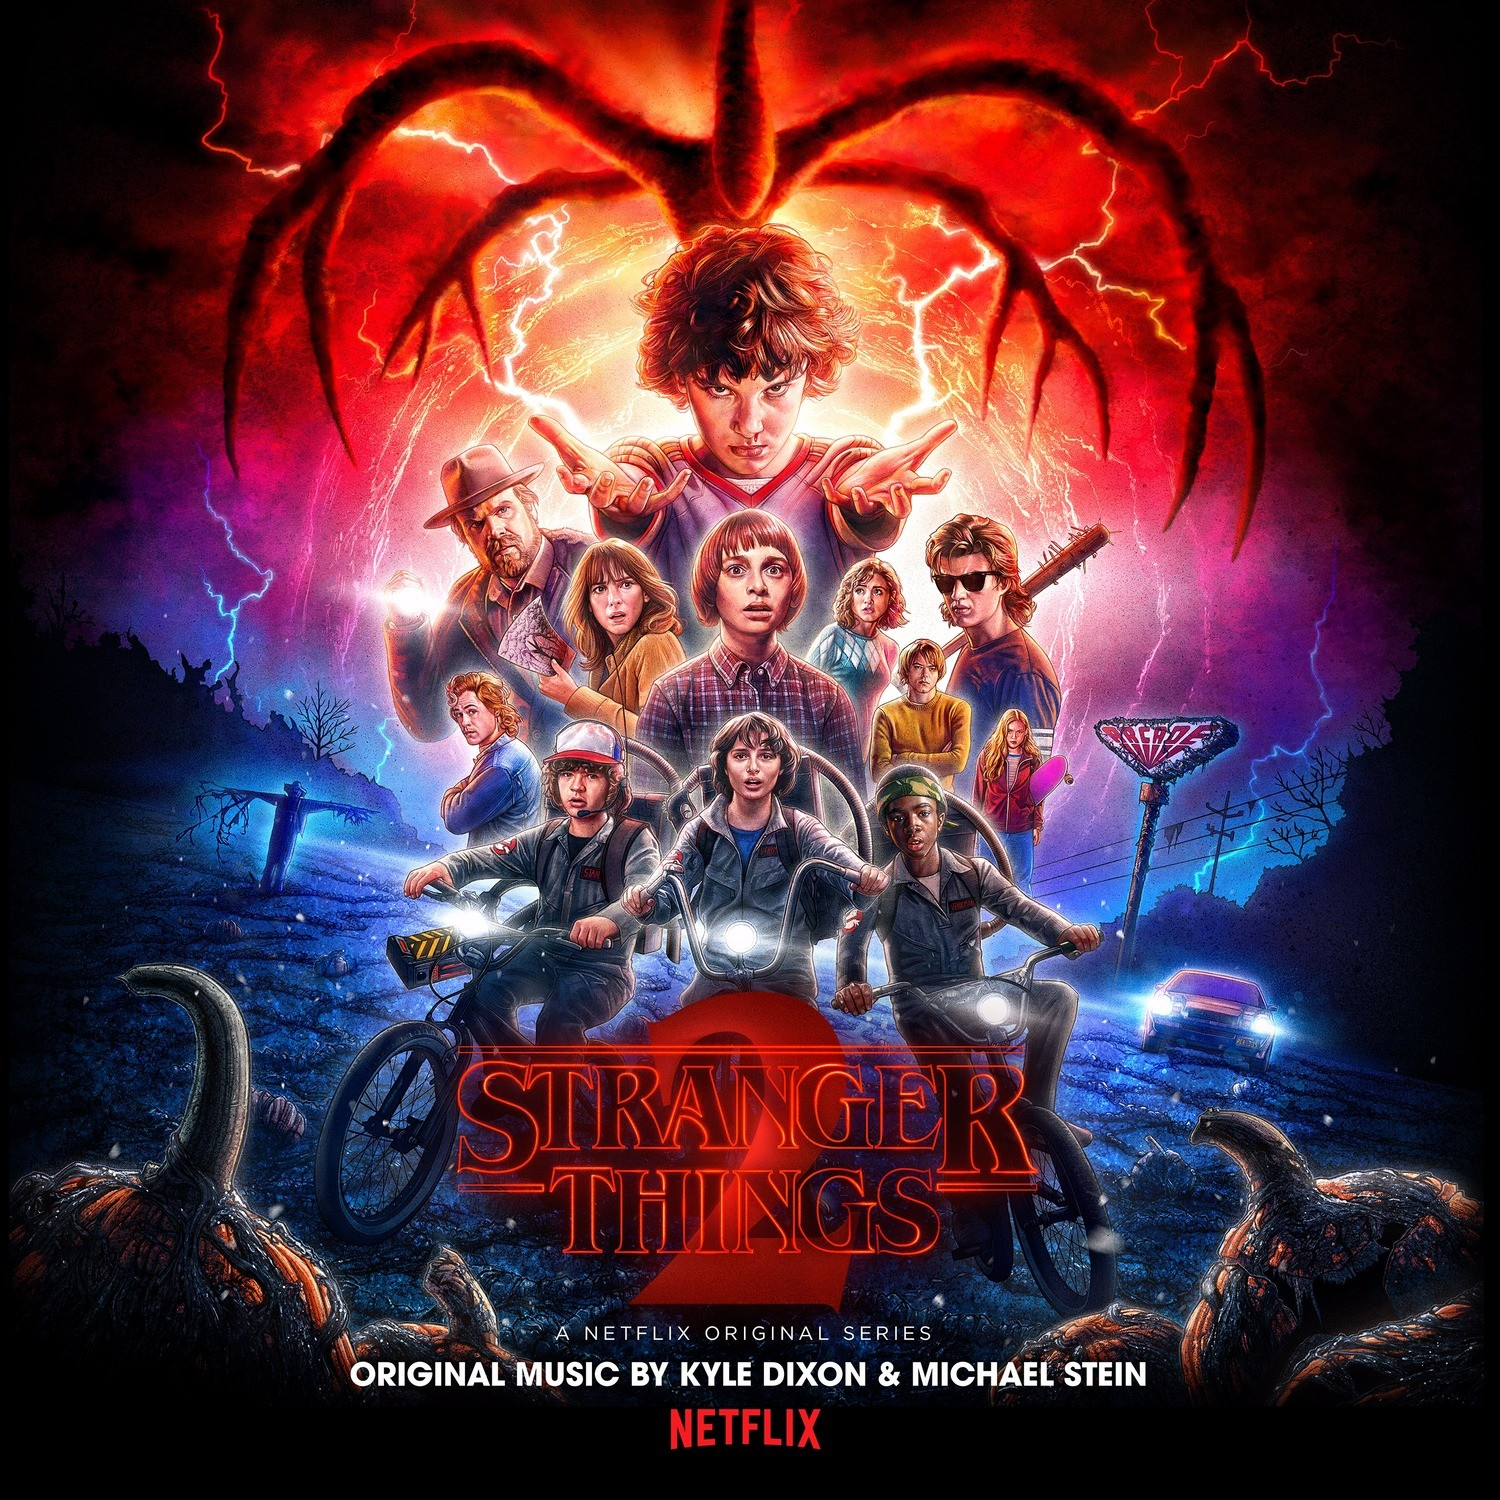 Kyle Dixon & Michael Stein - Stranger Things 2 Soundtrack 2XLP Vinyl